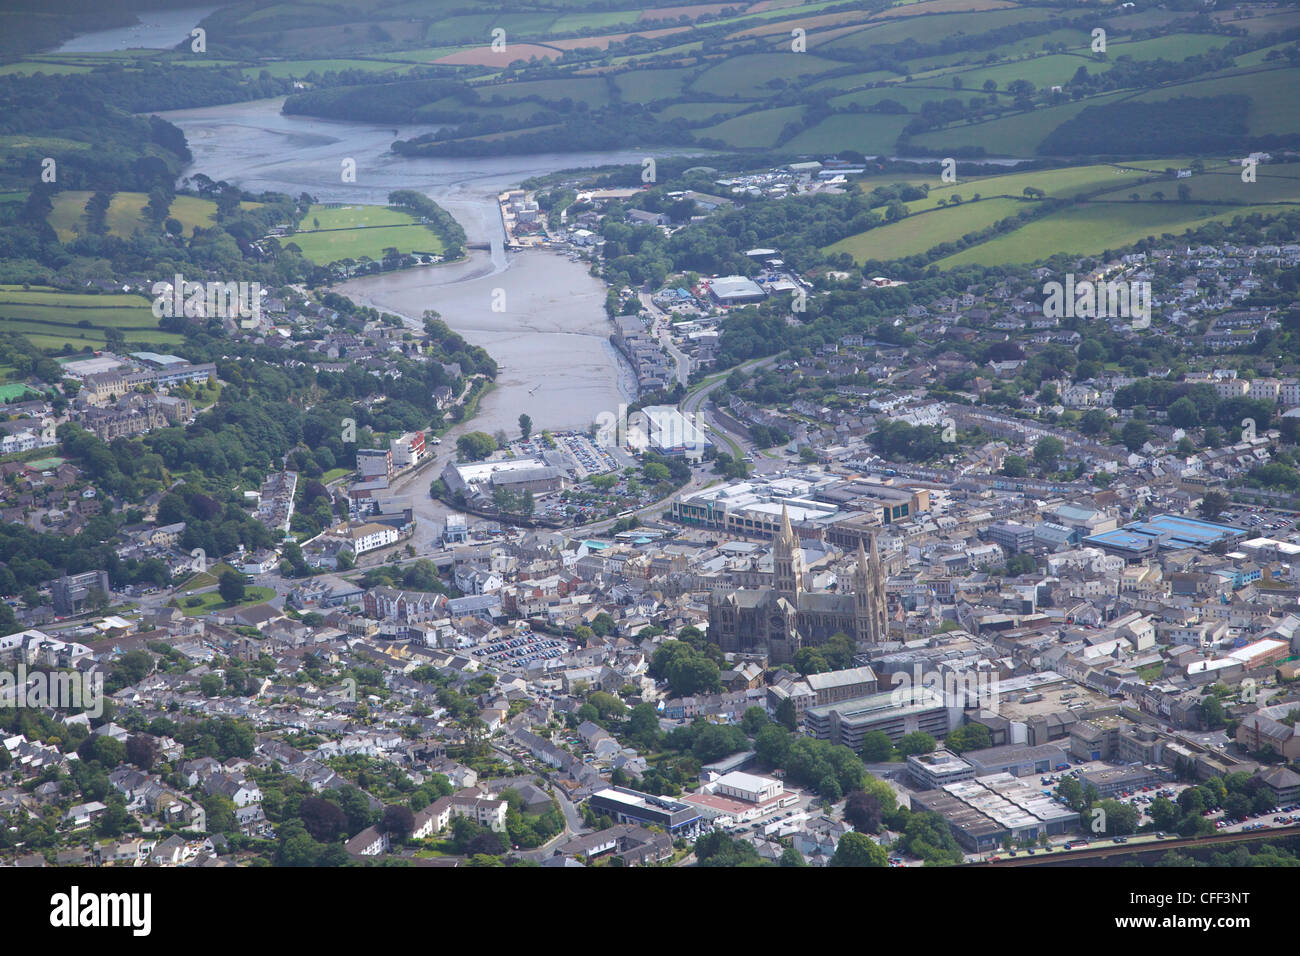 Aerial view of city and cathedral, Truro, Cornwall, England, United Kingdom, Europe - Stock Image